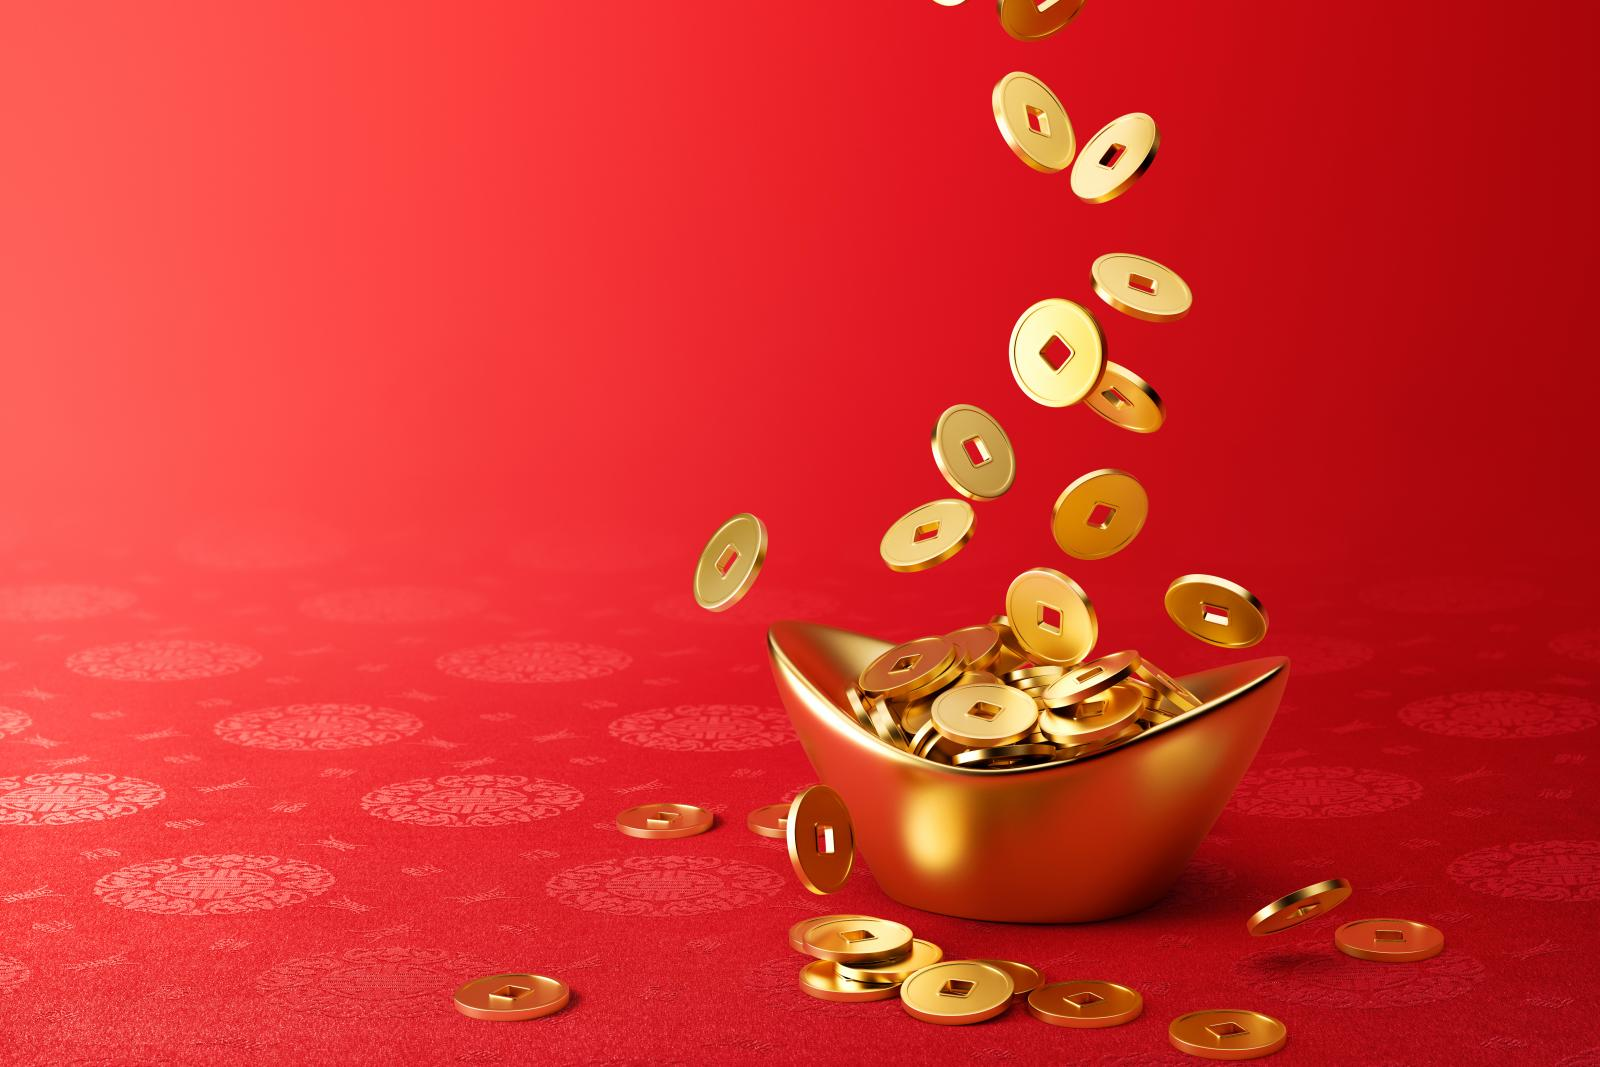 Gold Coins Dropping on Gold Sycee